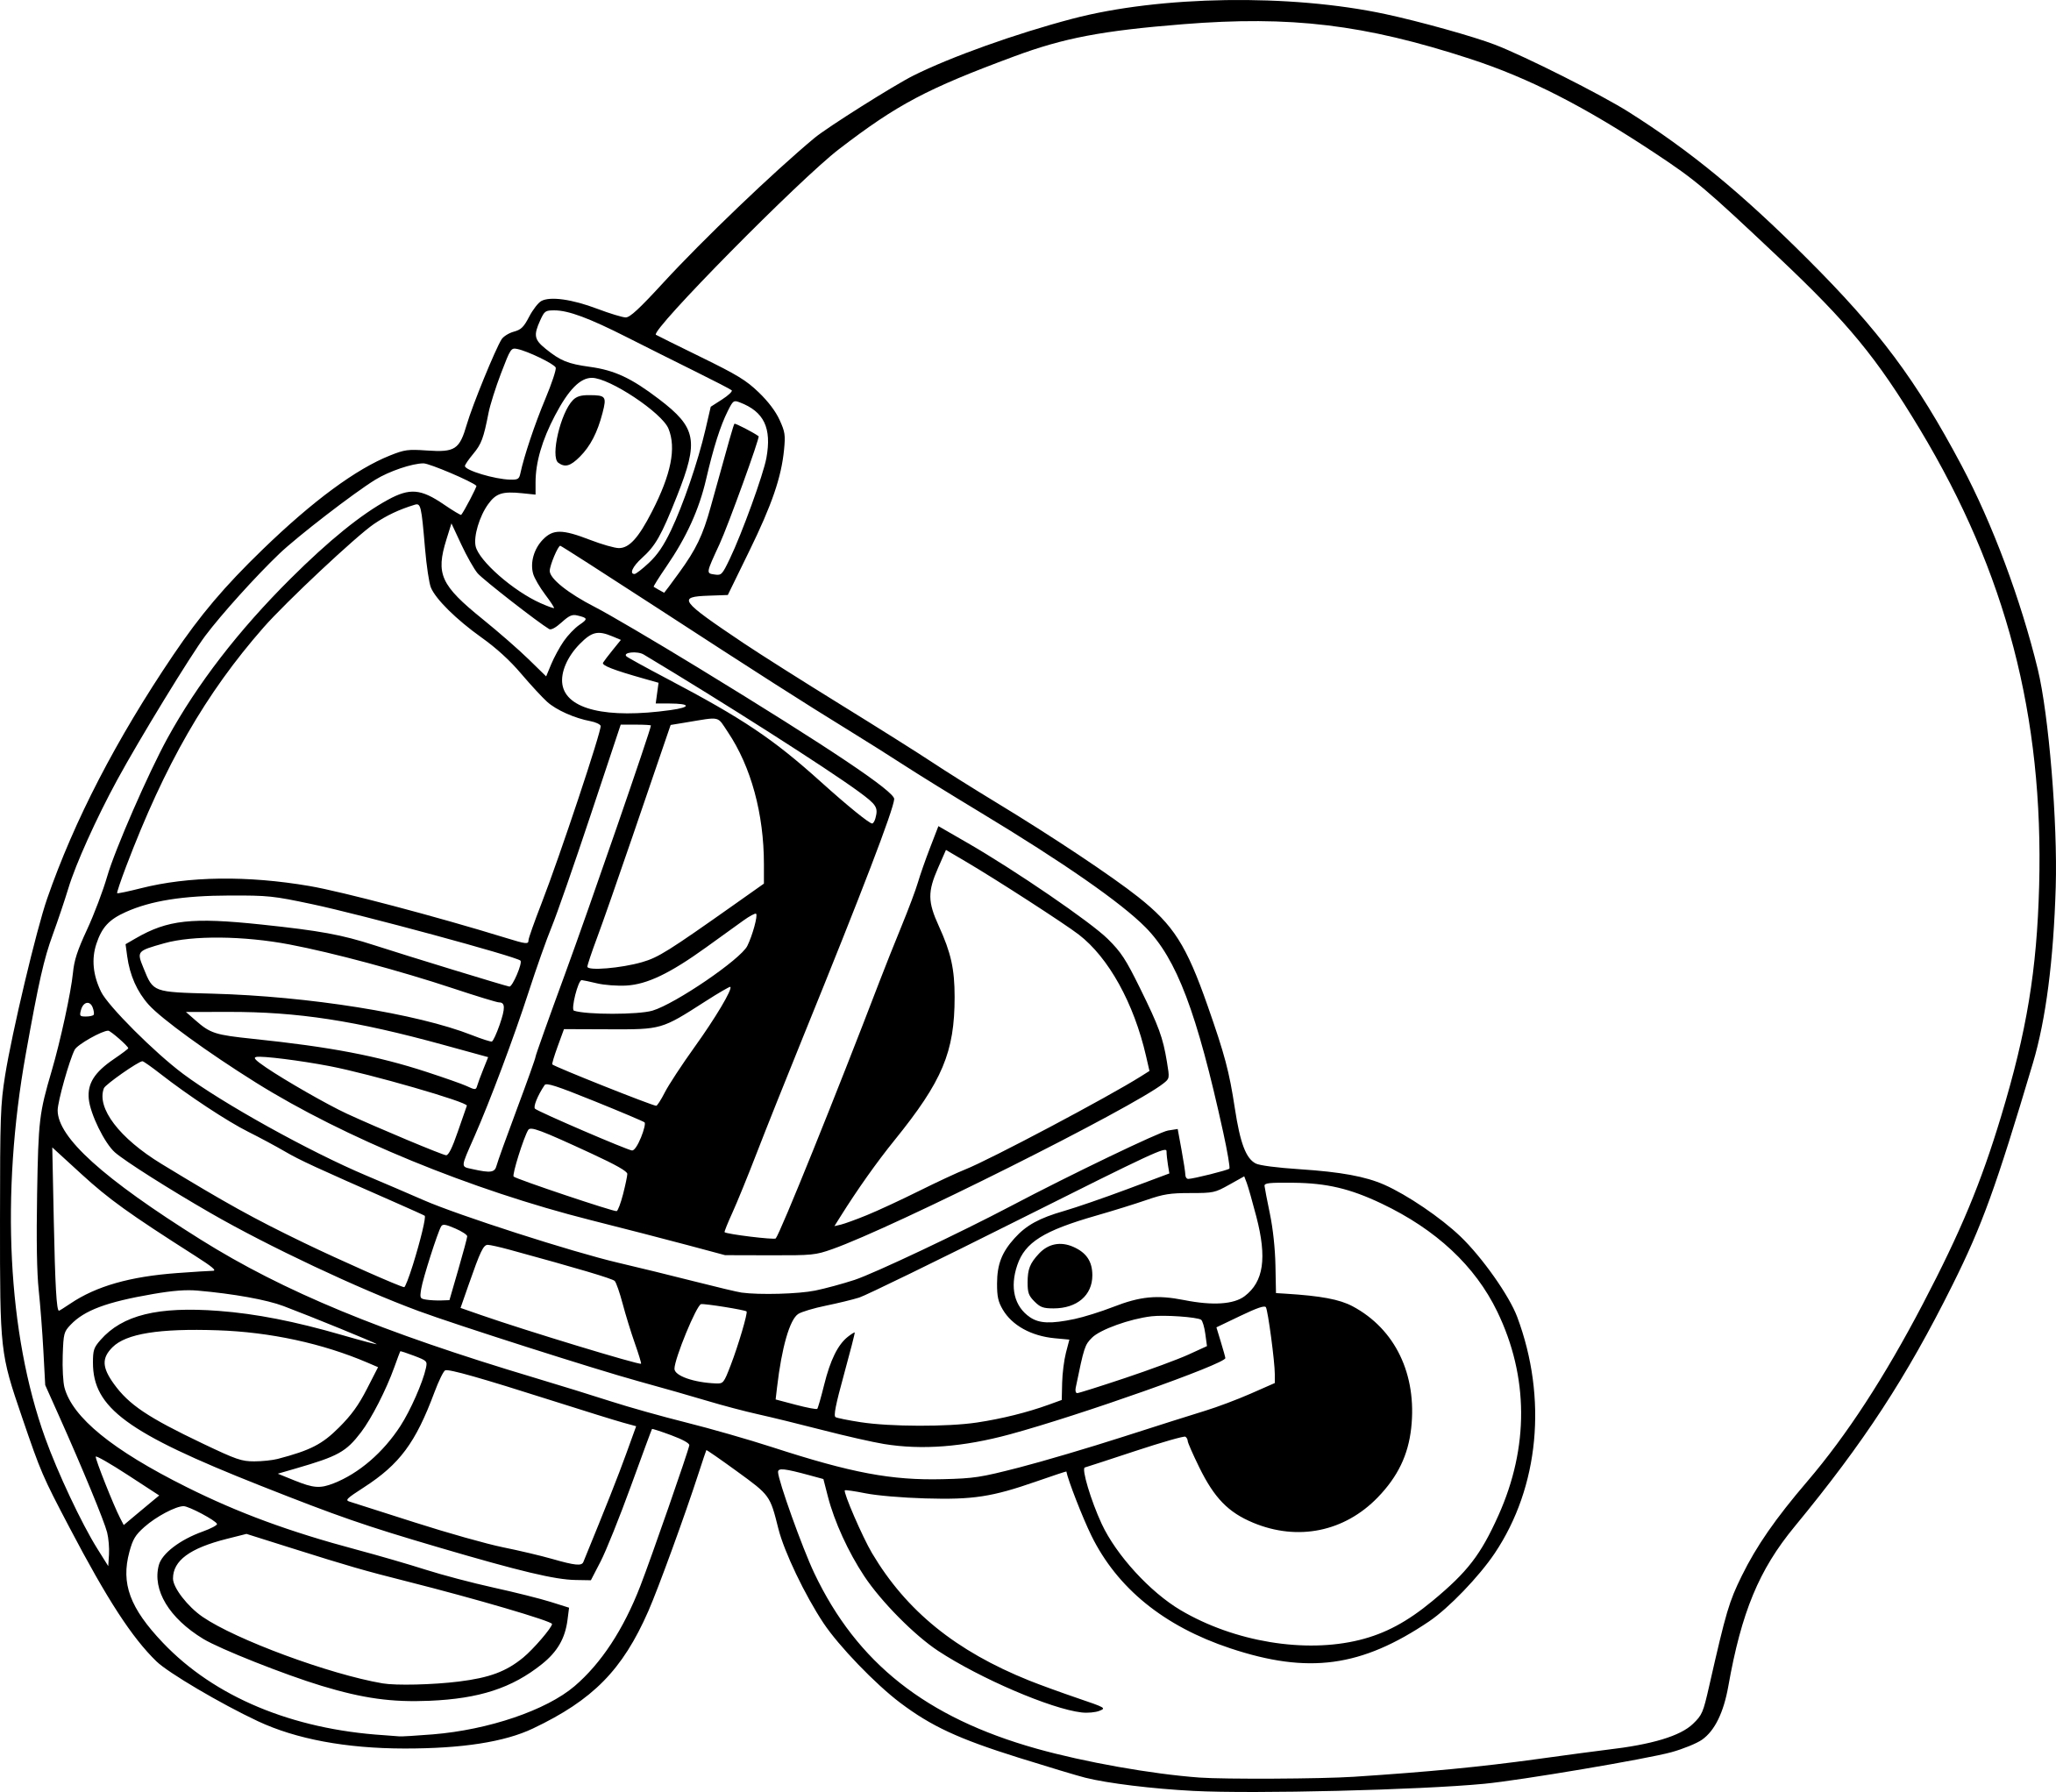 Coloriage Football Americain.Coloriage Casque Football Americain A Imprimer